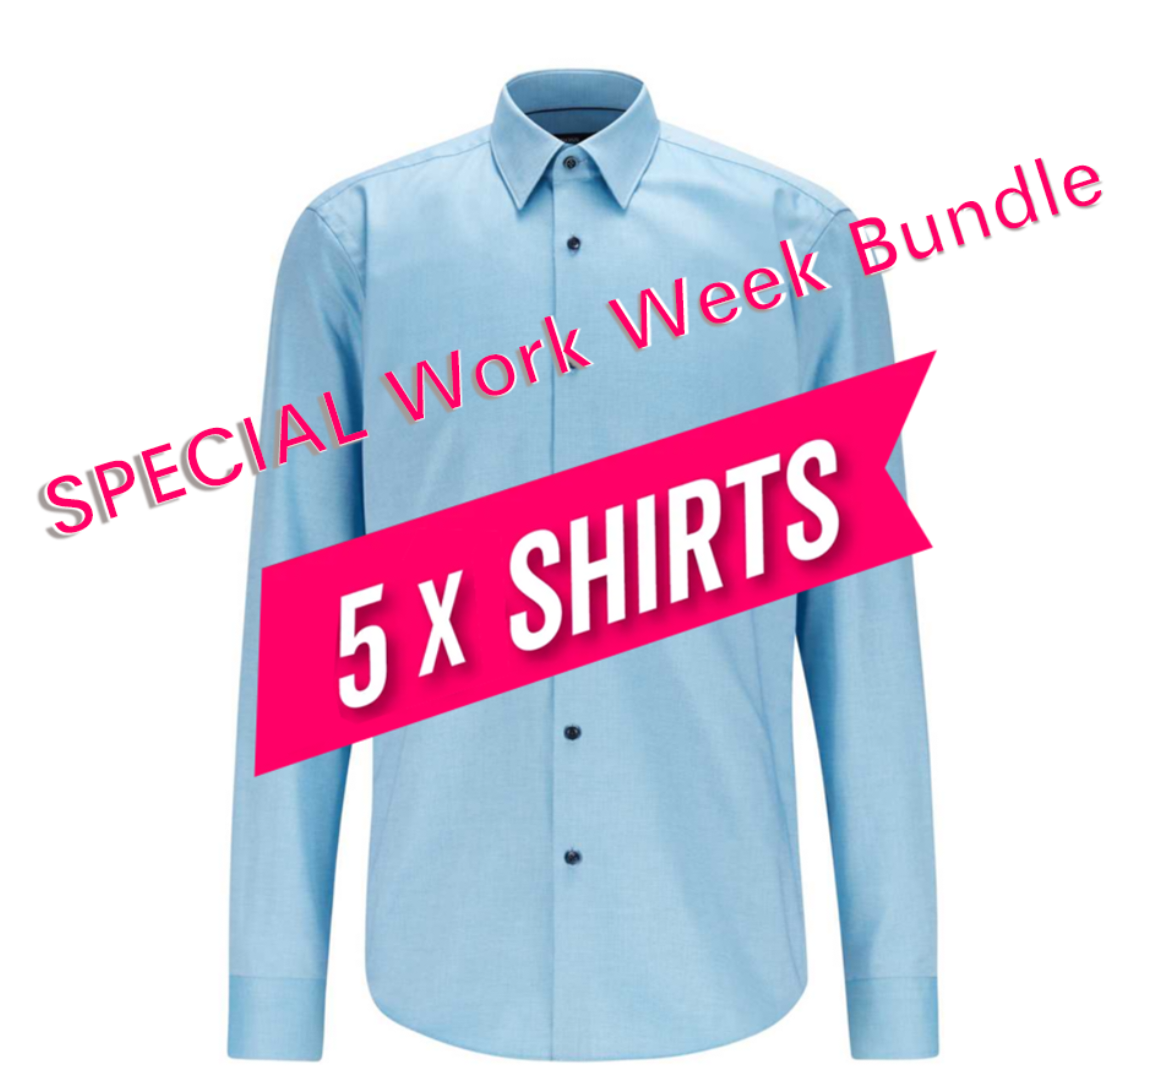 SPECIAL Work Week Bundle (5 Pcs shirts)